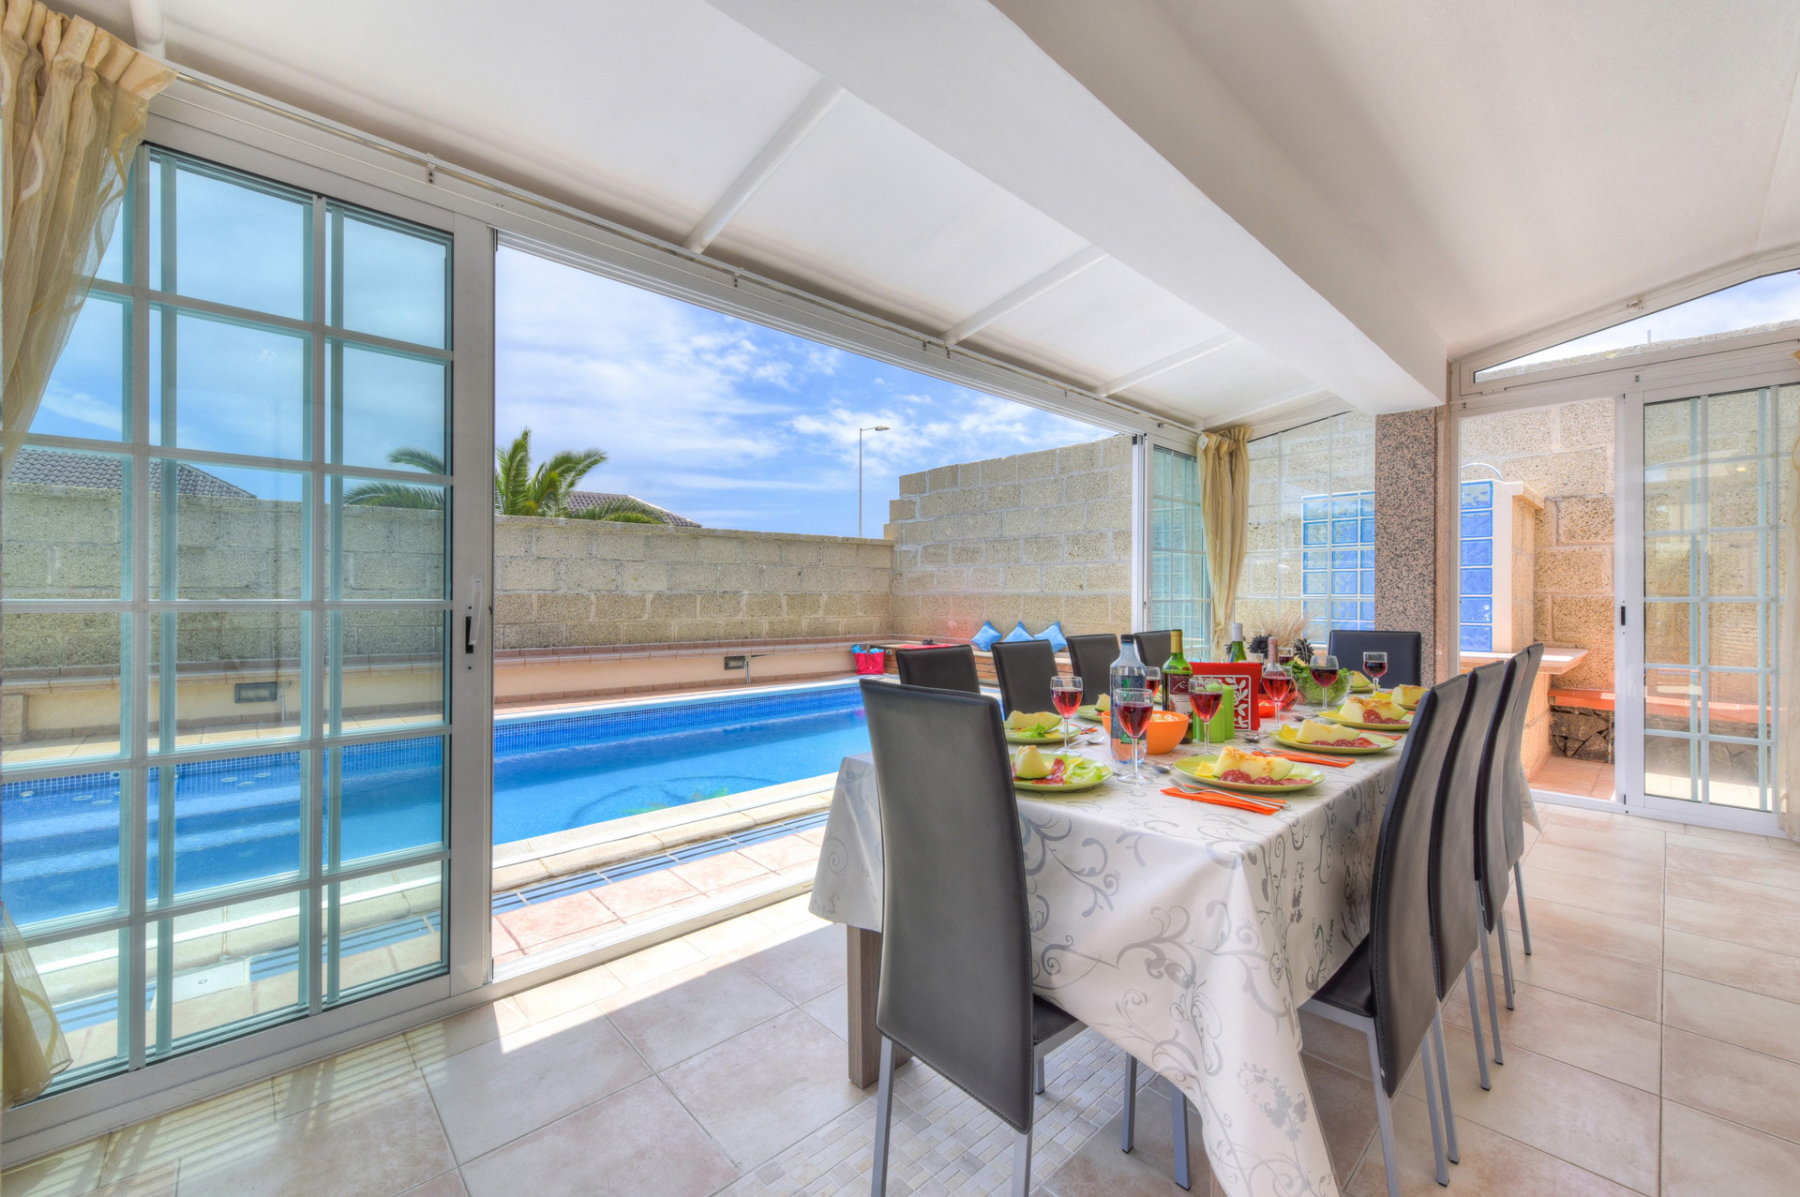 Properties for Sale in Tenerife, Canary Islands, Spain | SylkWayStar Real Estate. Villa 5 bedrooms Madroñal. Image-25091